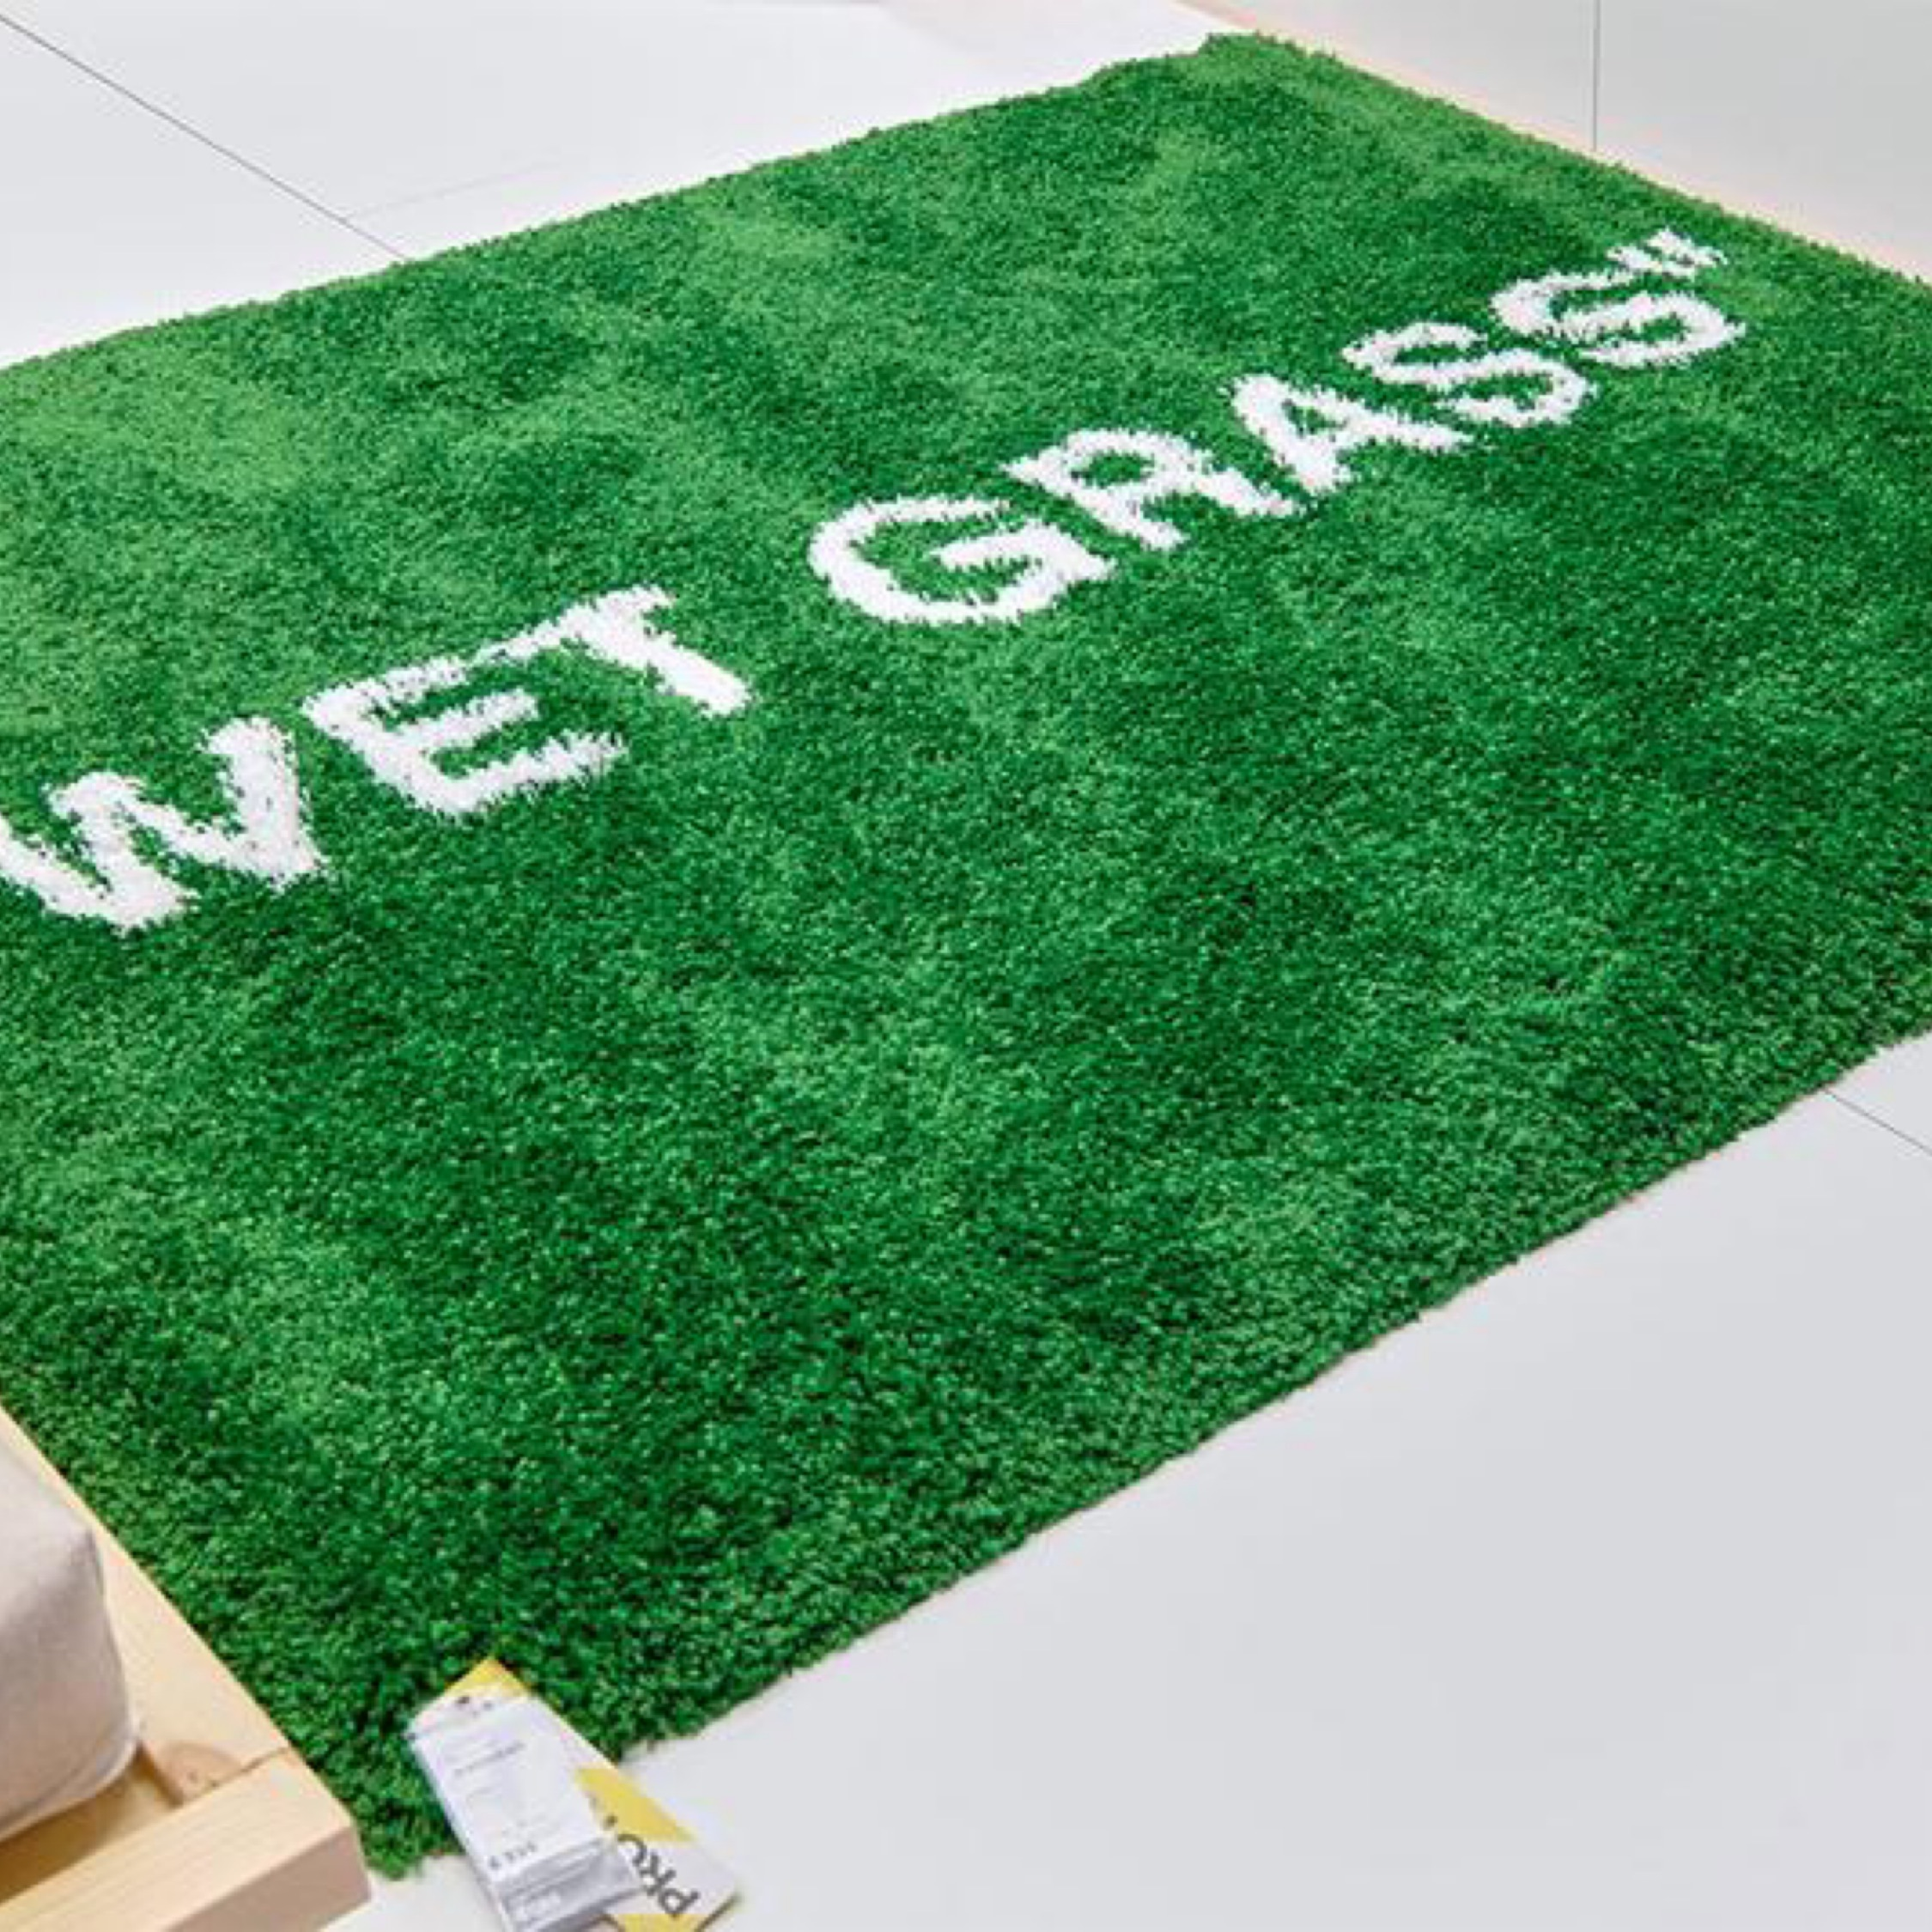 Ikea X Virgil Abloh Proxy For Wet Grass Carpet